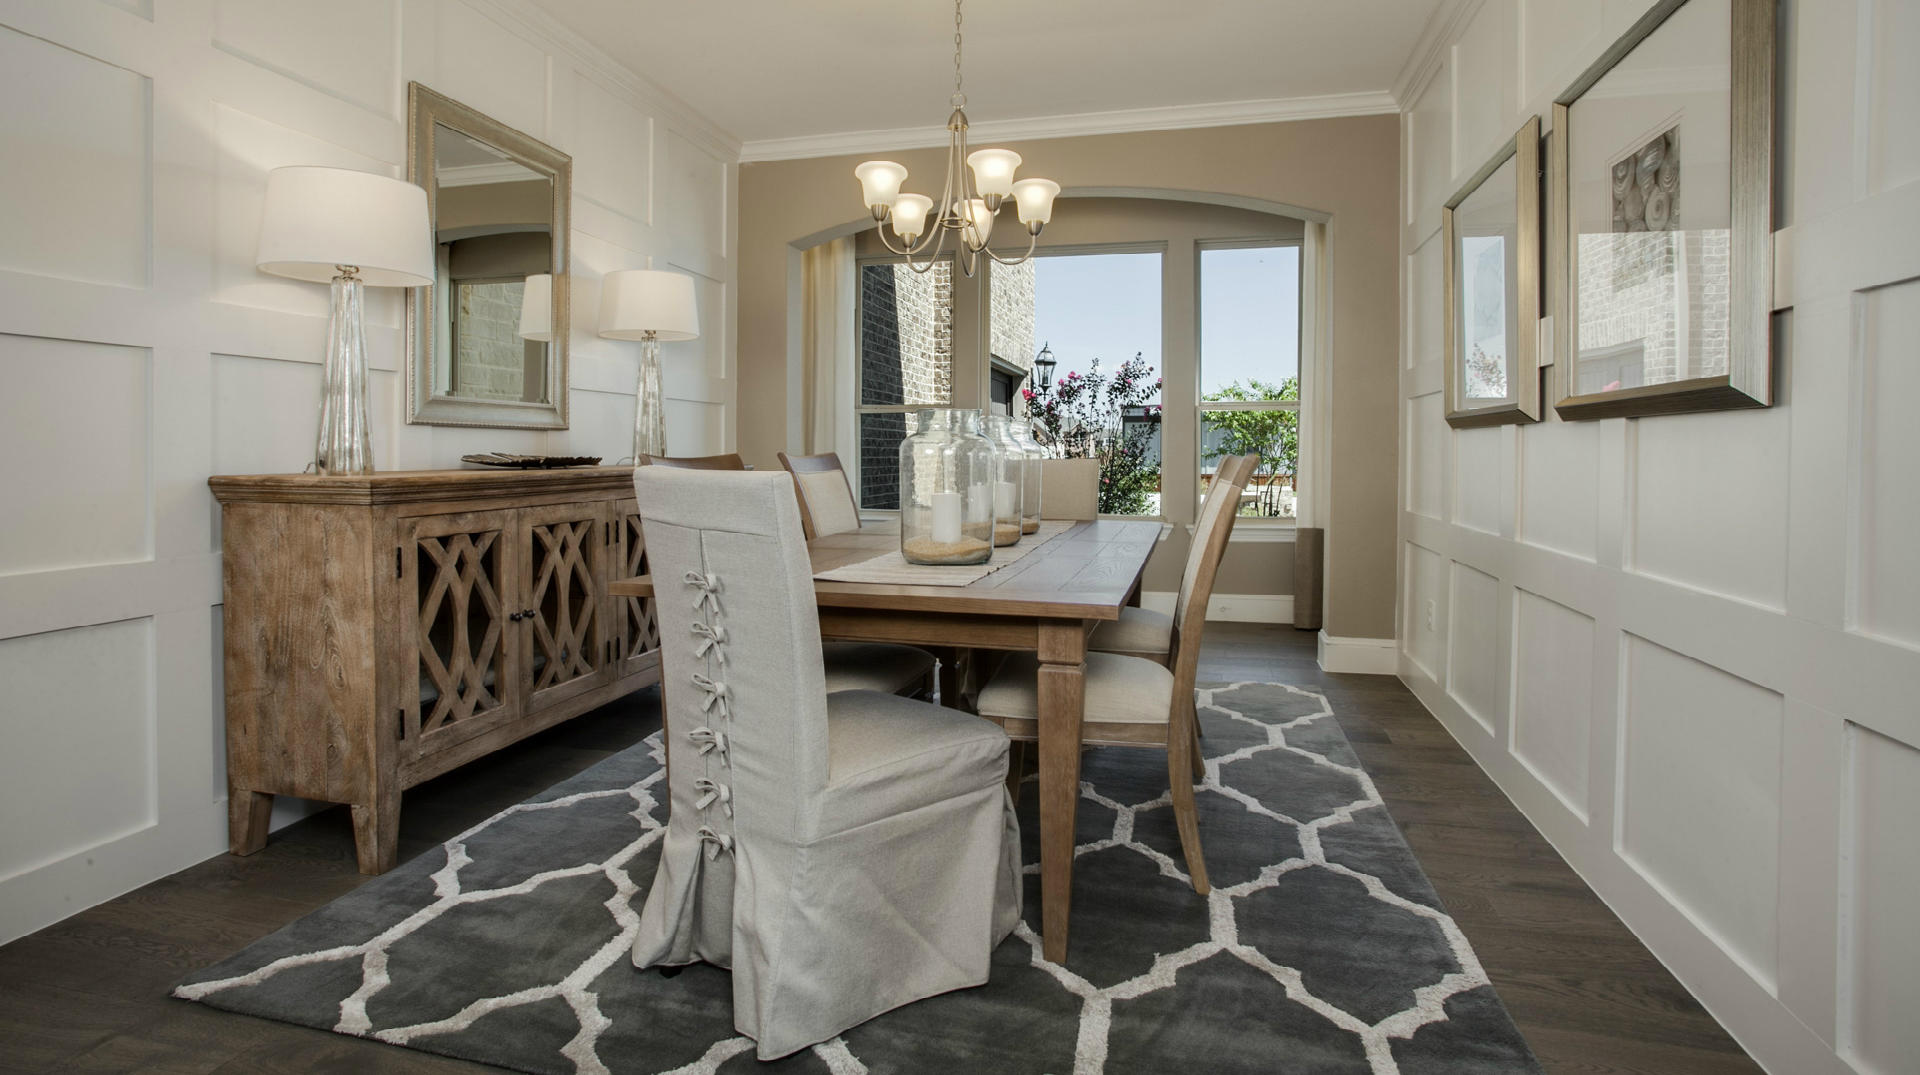 Reserve at Forest Glenn by Pulte Homes image 4